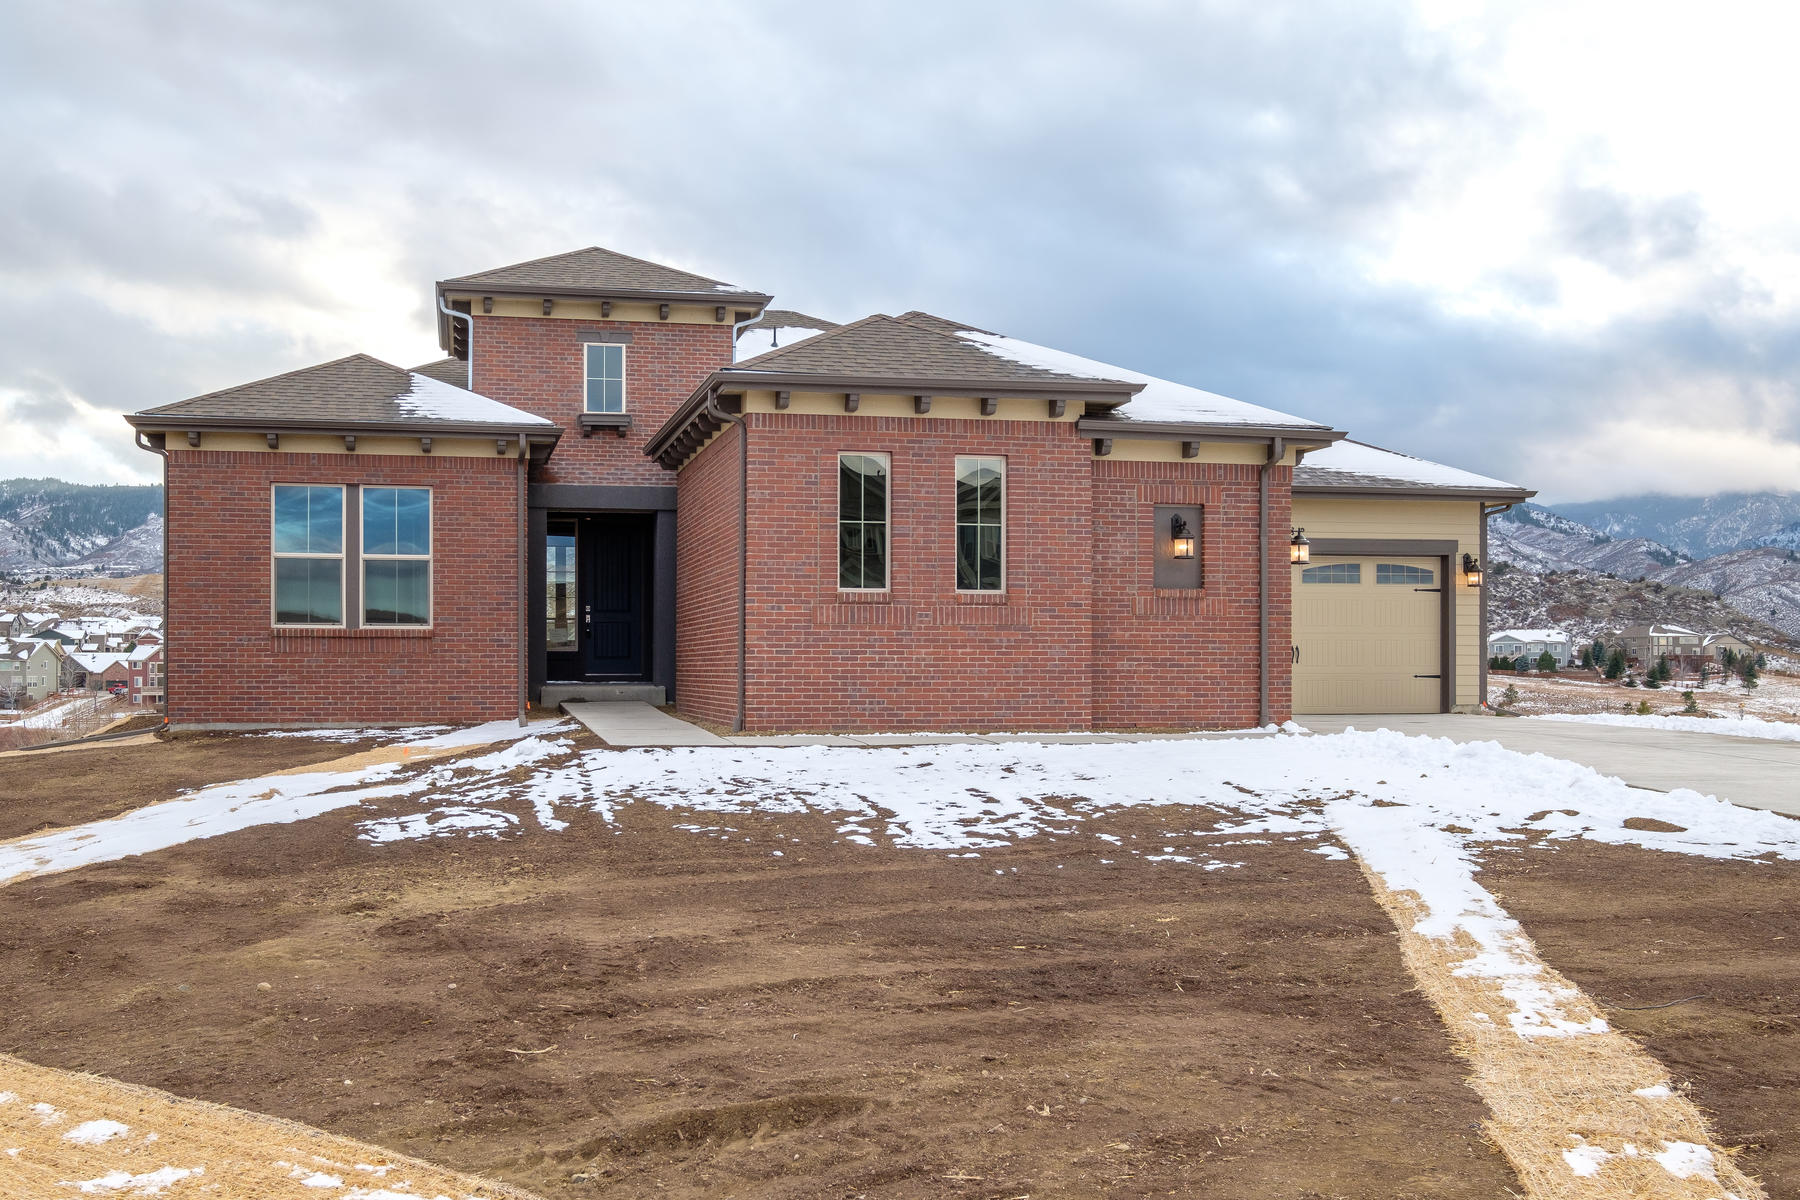 Single Family Home for Sale at Spectacular ranch style home ready now! 8711 Hunters Hill Ln, Littleton, Colorado, 80125 United States